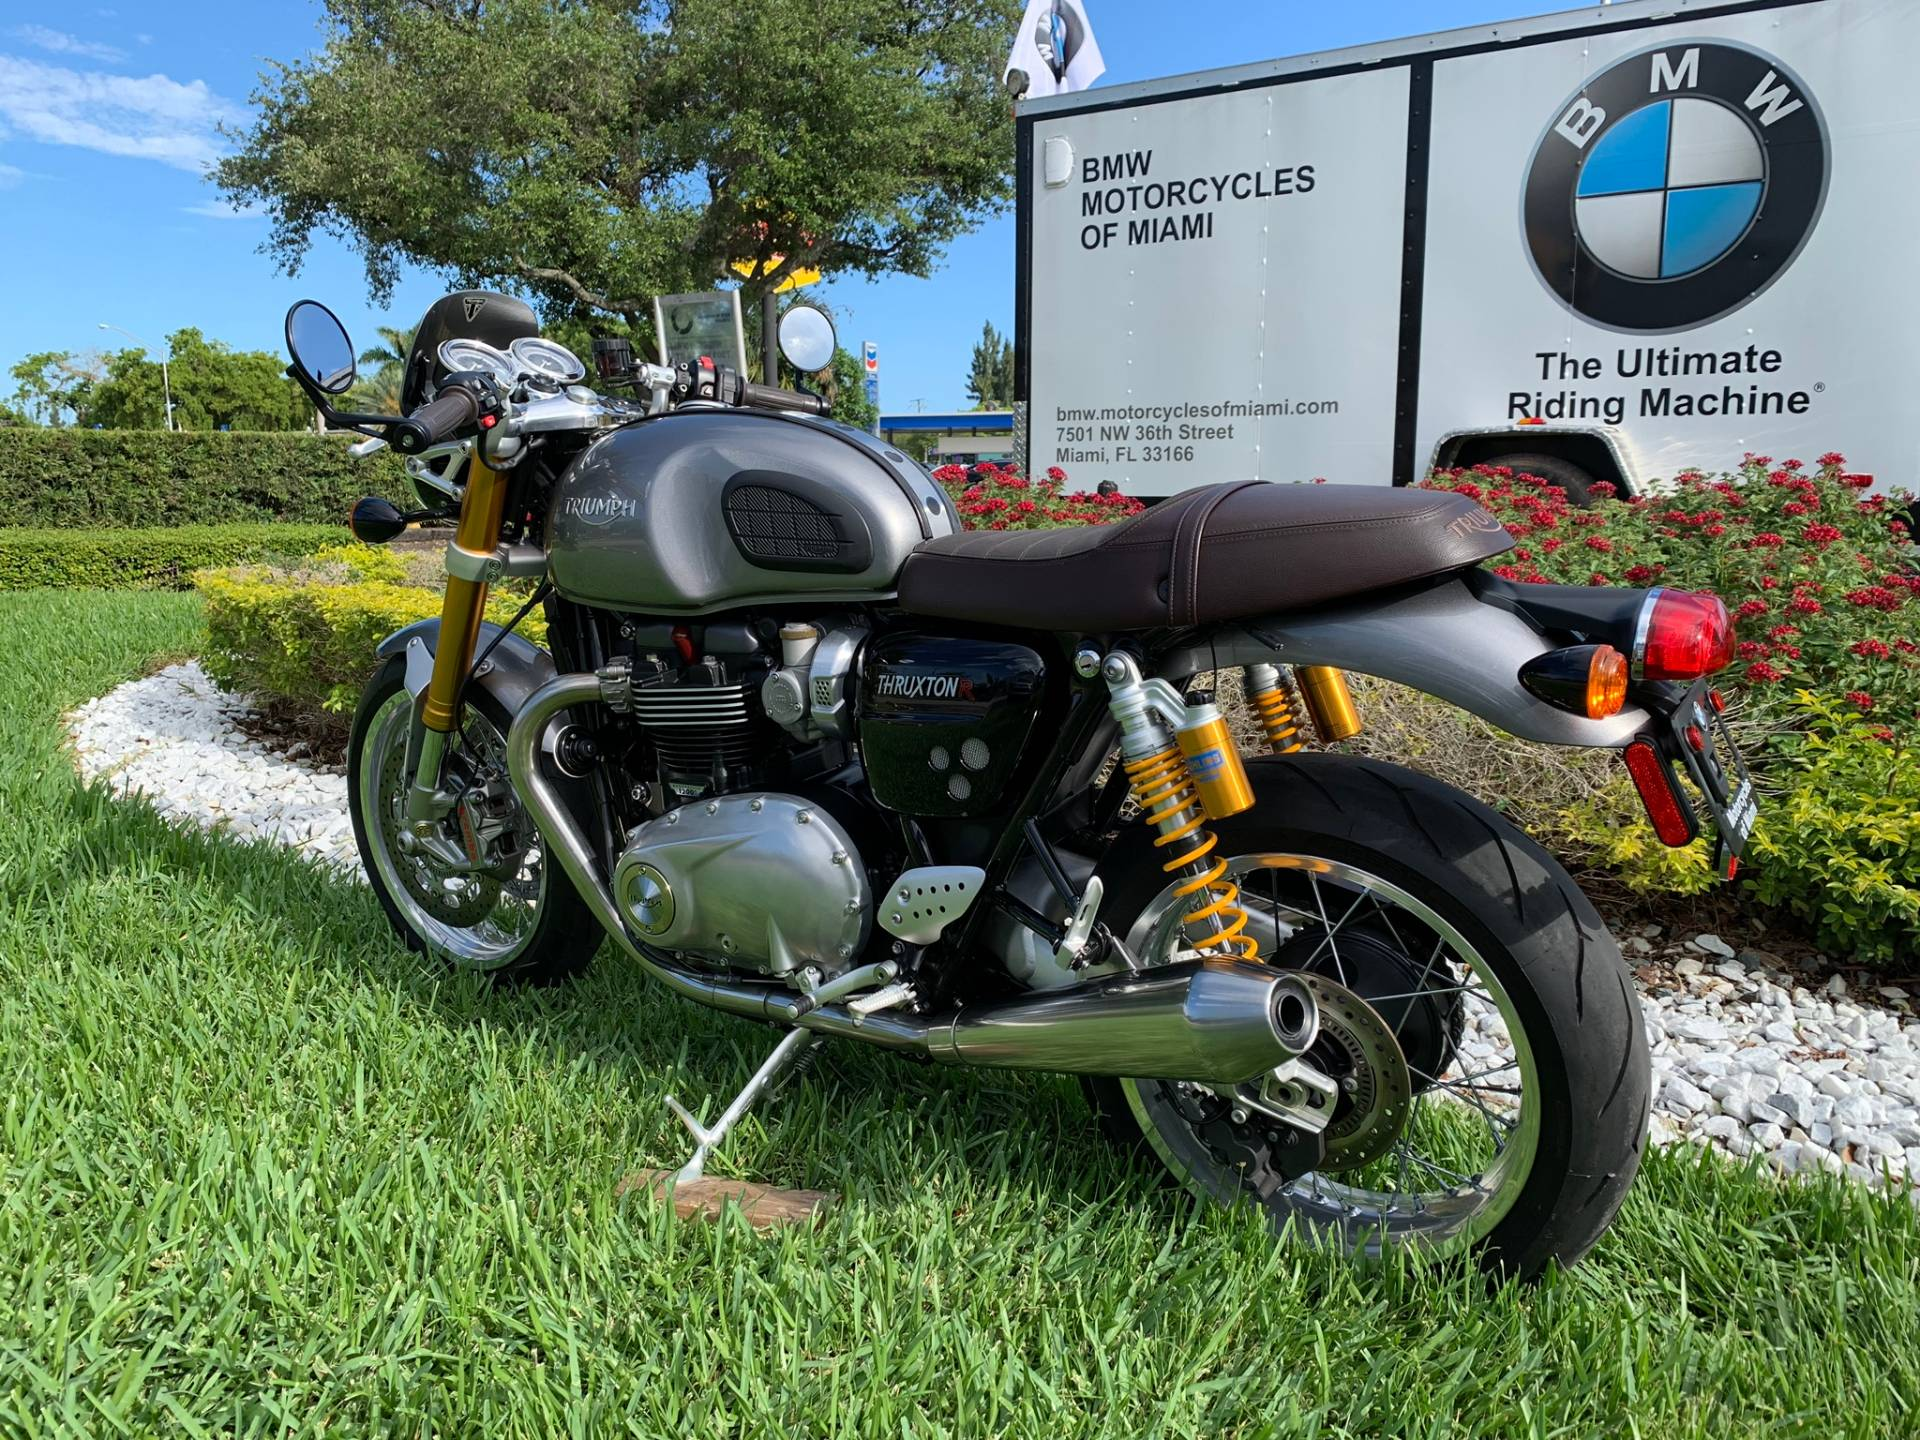 Used 2016 Triumph Thruxton 1200 R for sale,  2016 Triumph Thruxton 1200R for sale,  Triumph Thruxton1200R,  Used ThruxtonR, Cafe. Cruiser, BMW Motorcycles of Miami, Motorcycles of Miami, Motorcycles Miami, New Motorcycles, Used Motorcycles, pre-owned. #BMWMotorcyclesOfMiami #MotorcyclesOfMiami #Moto - Photo 9